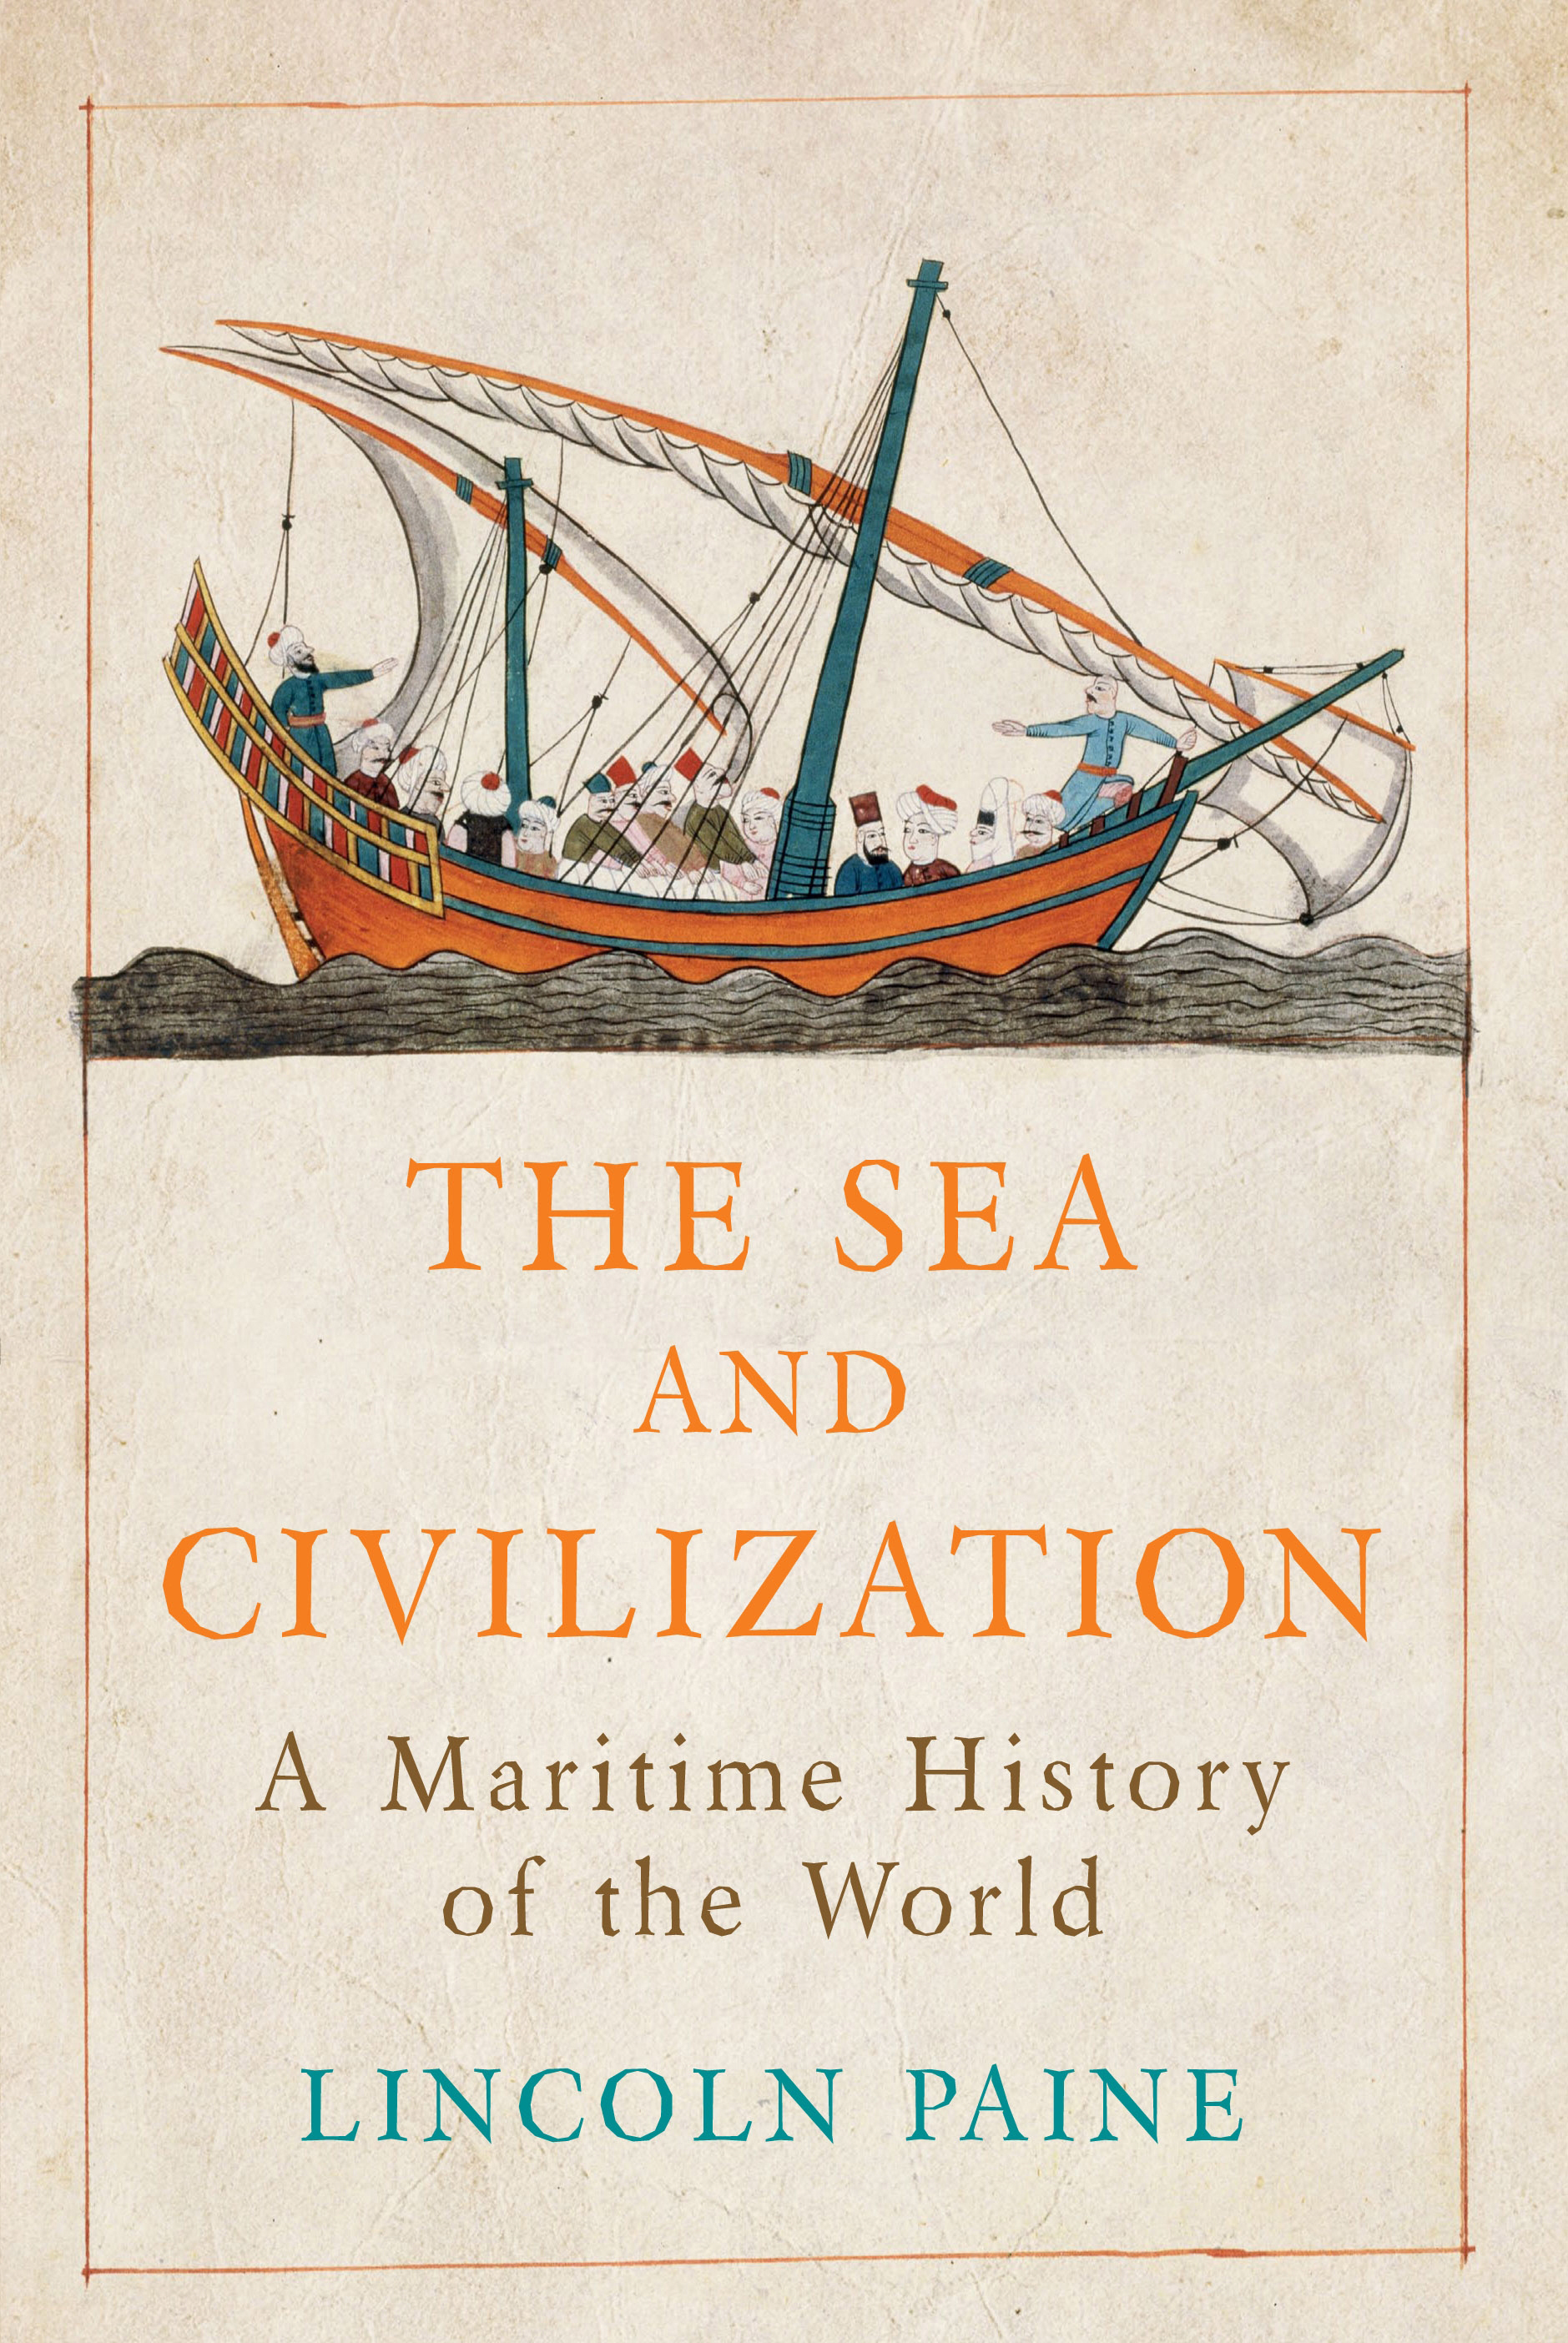 The Sea and Civilization by Lincoln Paine, ISBN: 9781782393559